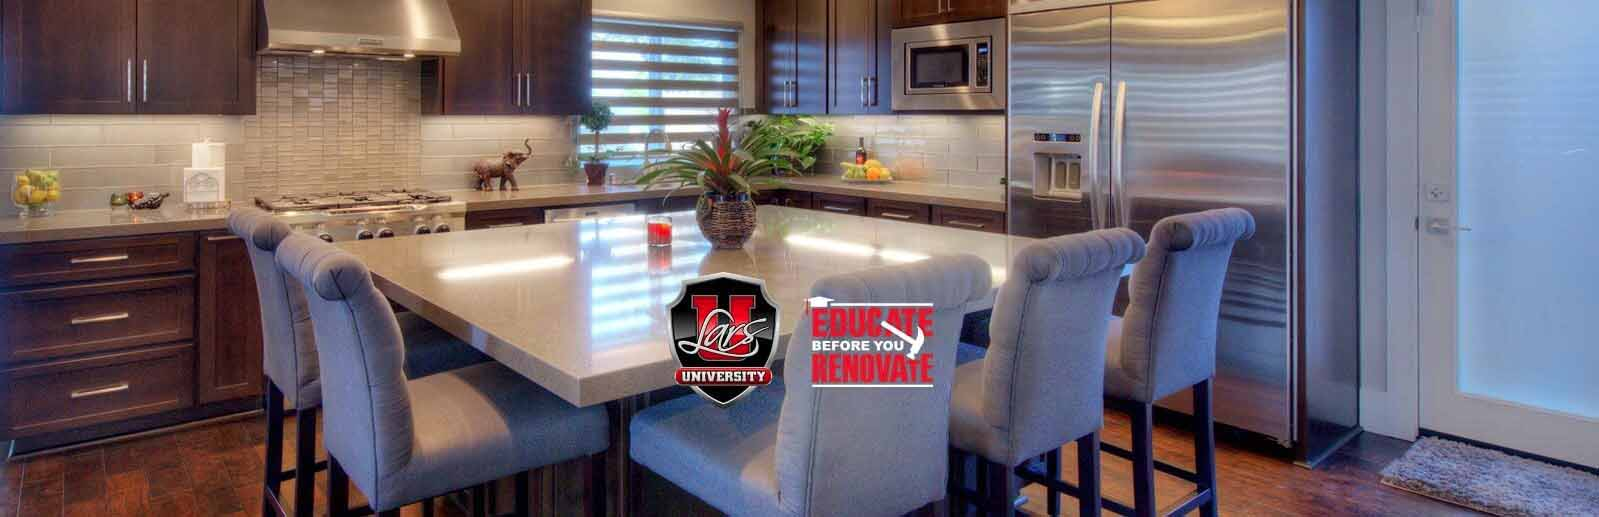 San Diego Remodeling Workshop